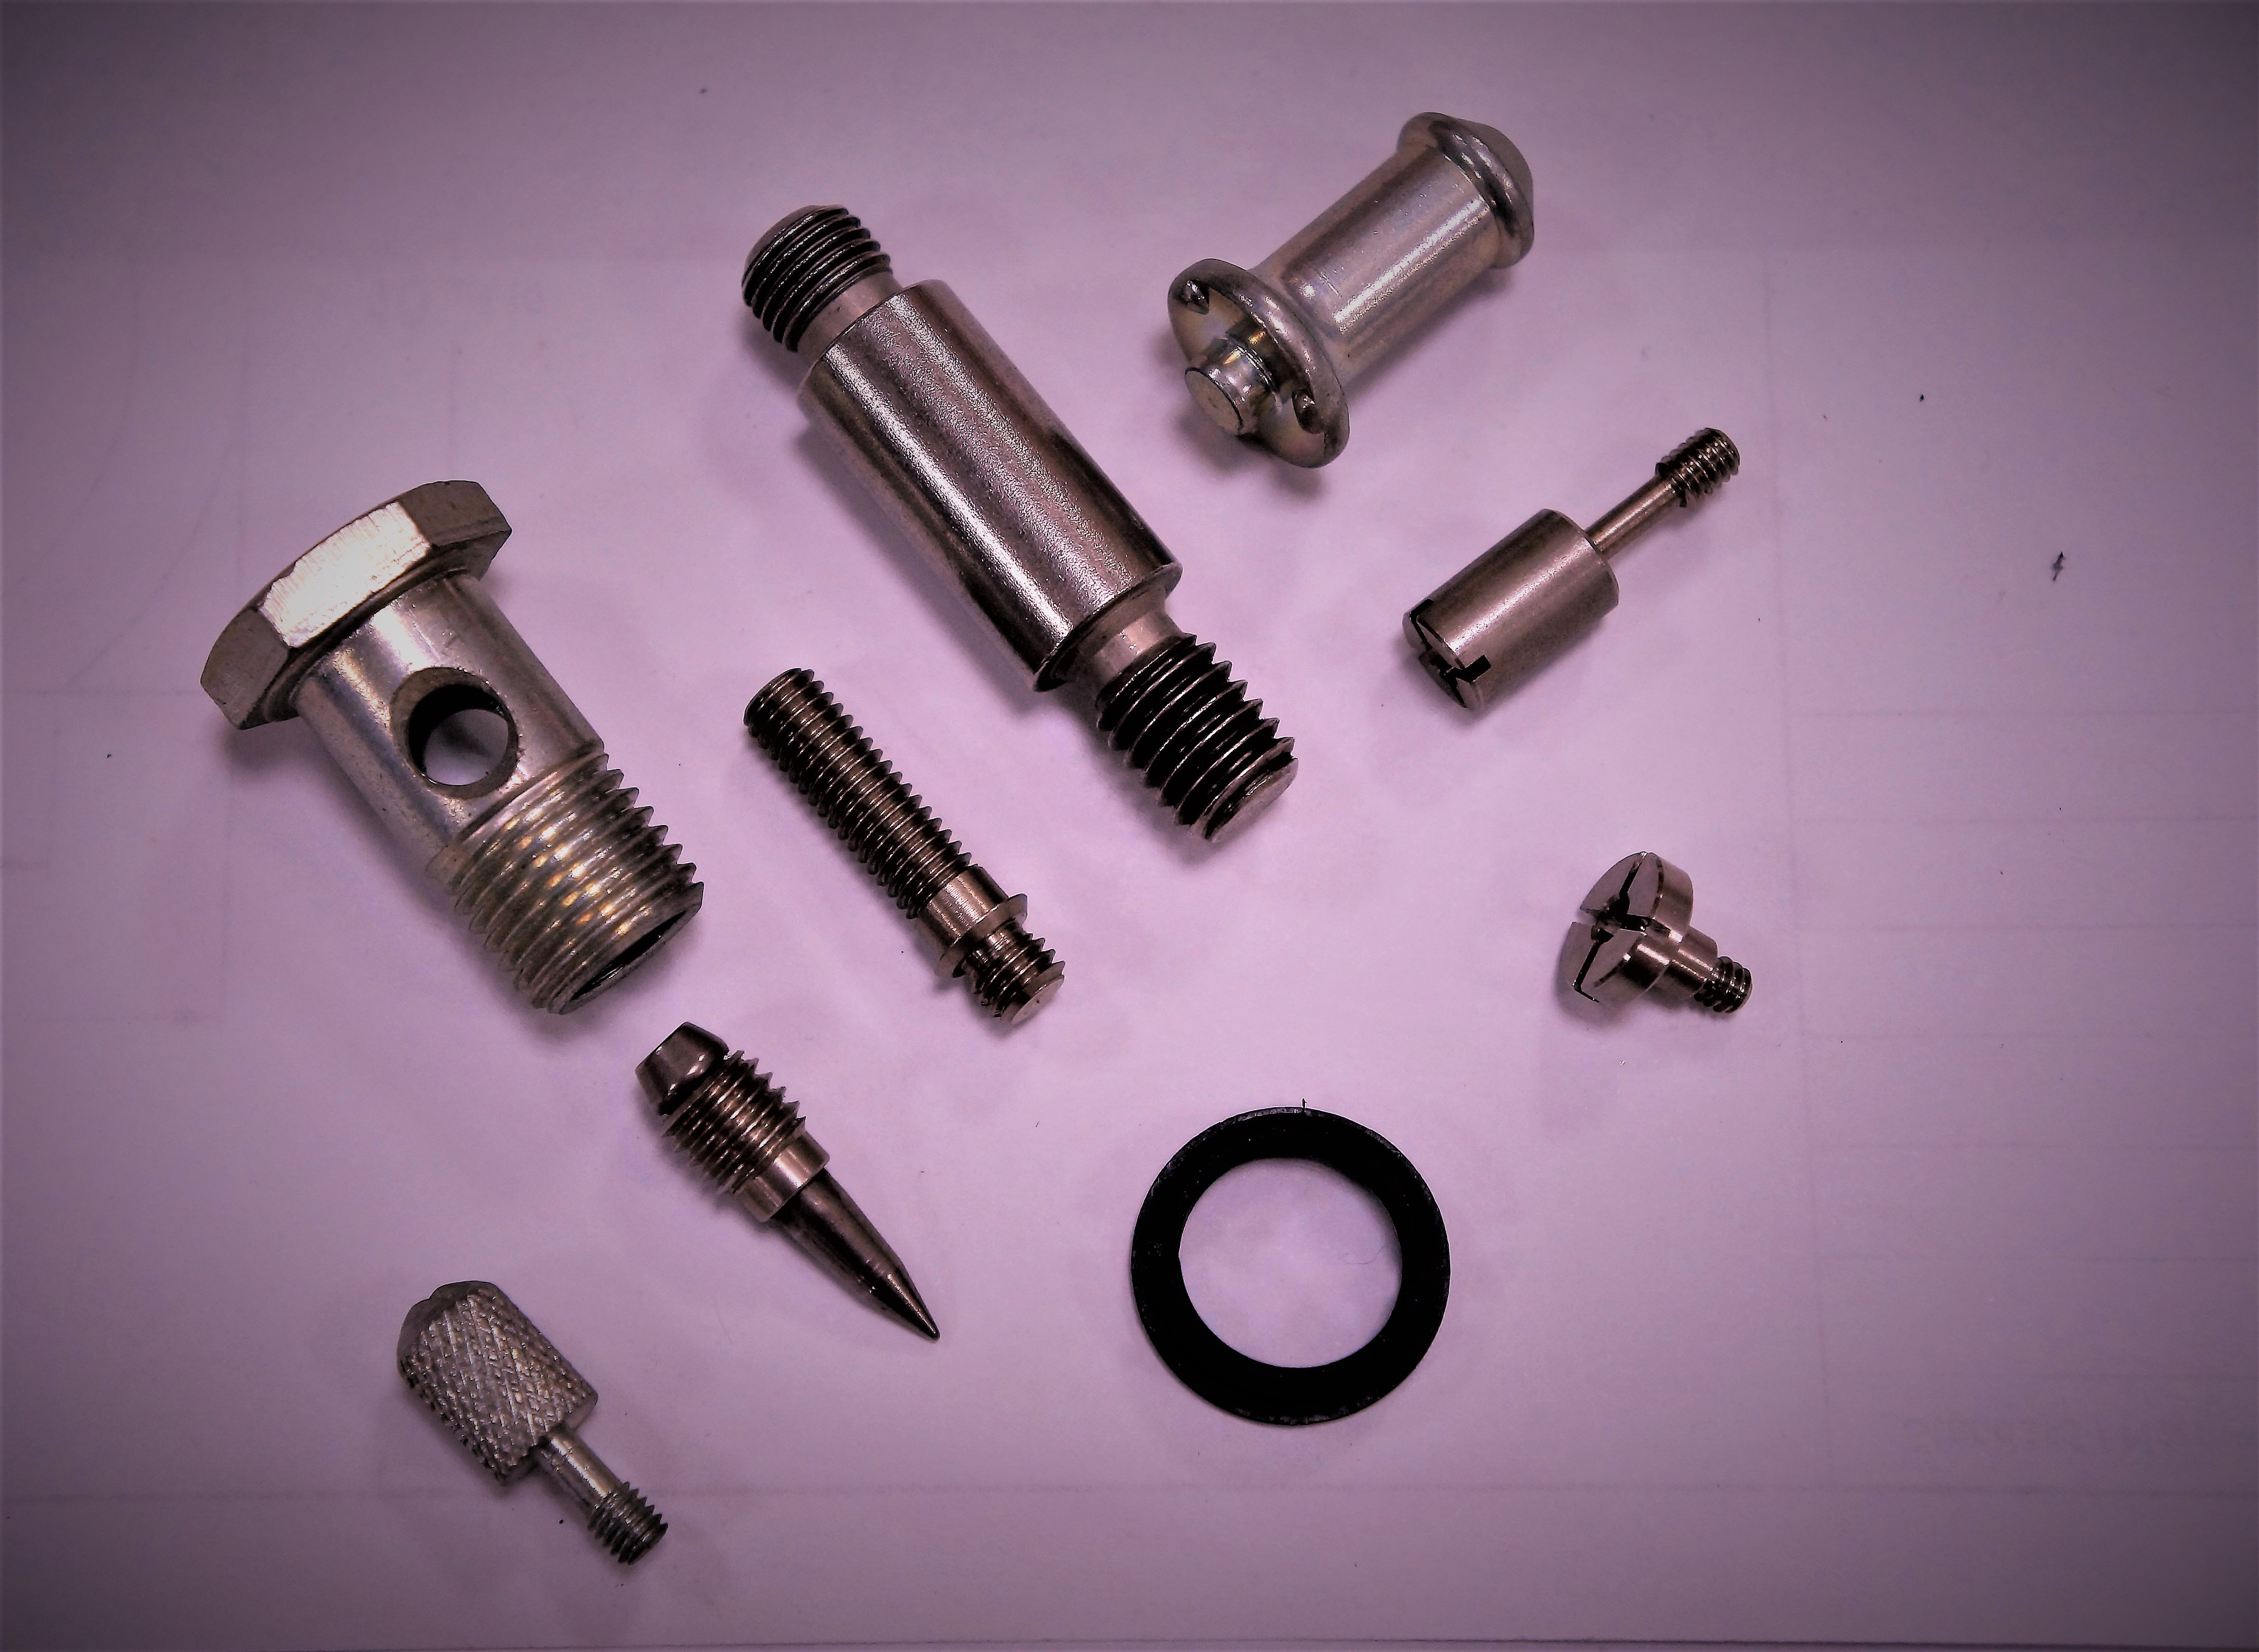 Bus Special Screw for Vehicle Fastener made by Sunny Screw Industry 三能螺栓工業股份有限公司 - MatchSupplier.com